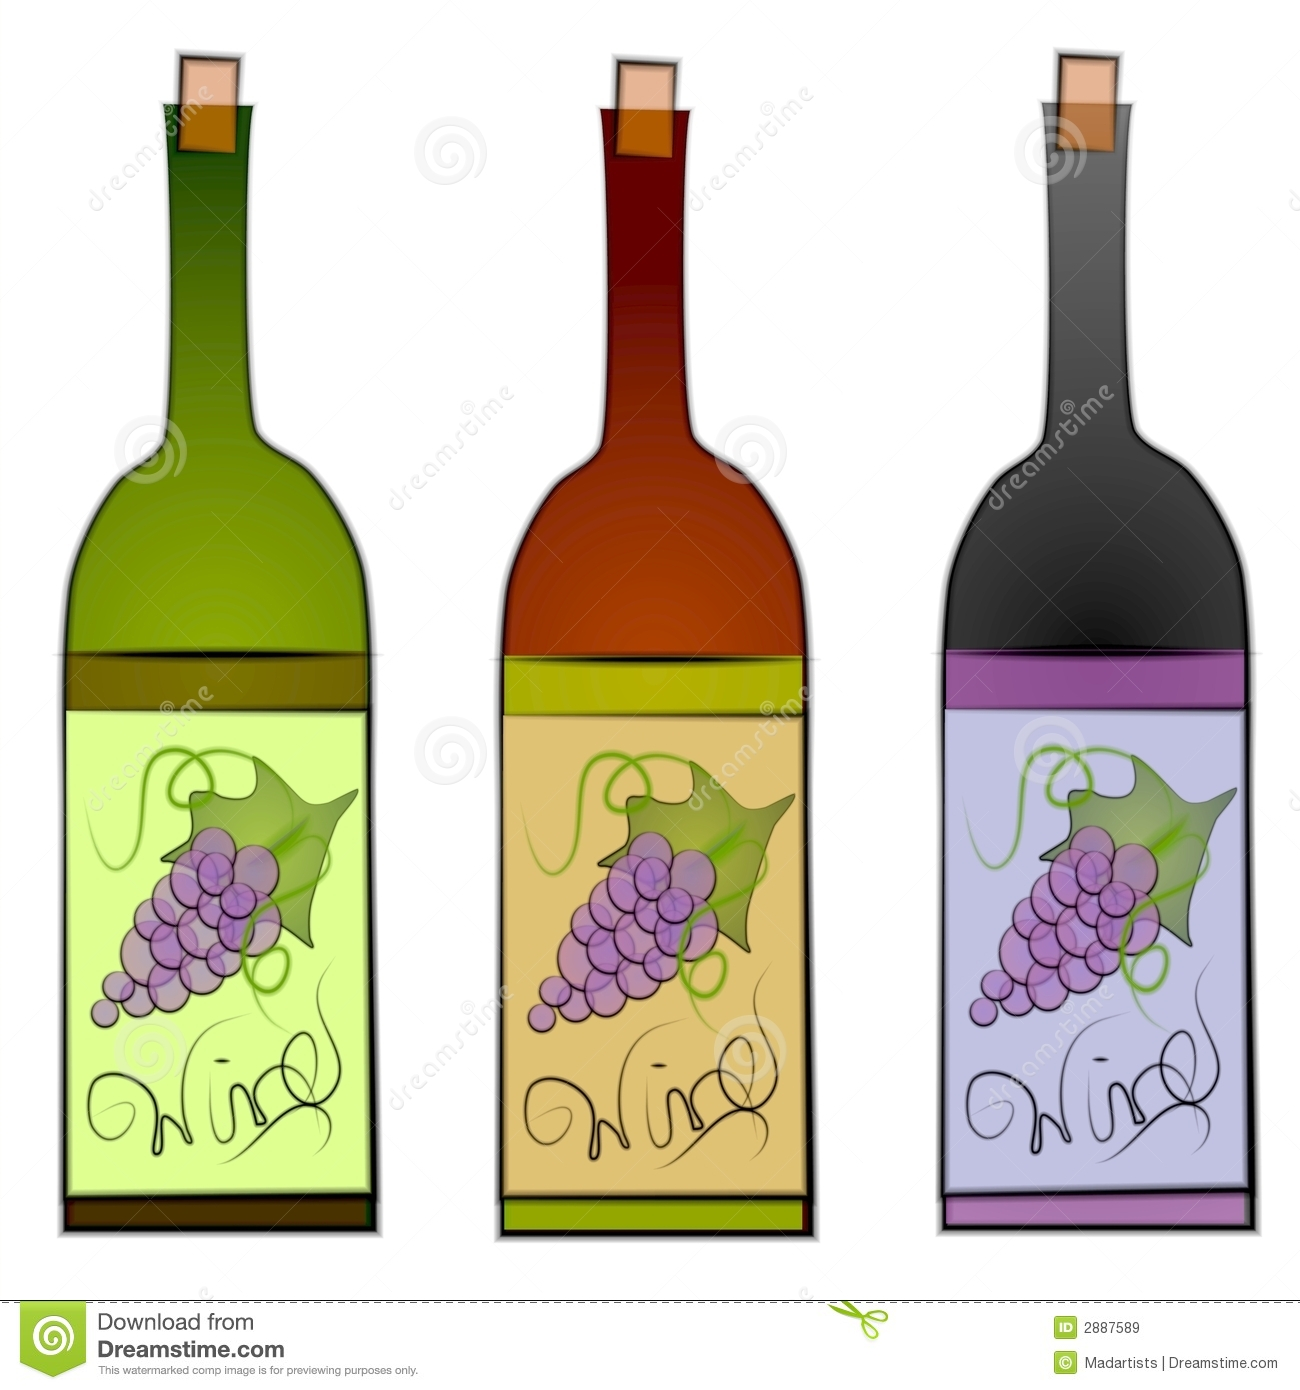 Stock clipart free download picture library library Wine Bottles Clip Art Royalty Free Stock Images - Image: 2887589 picture library library